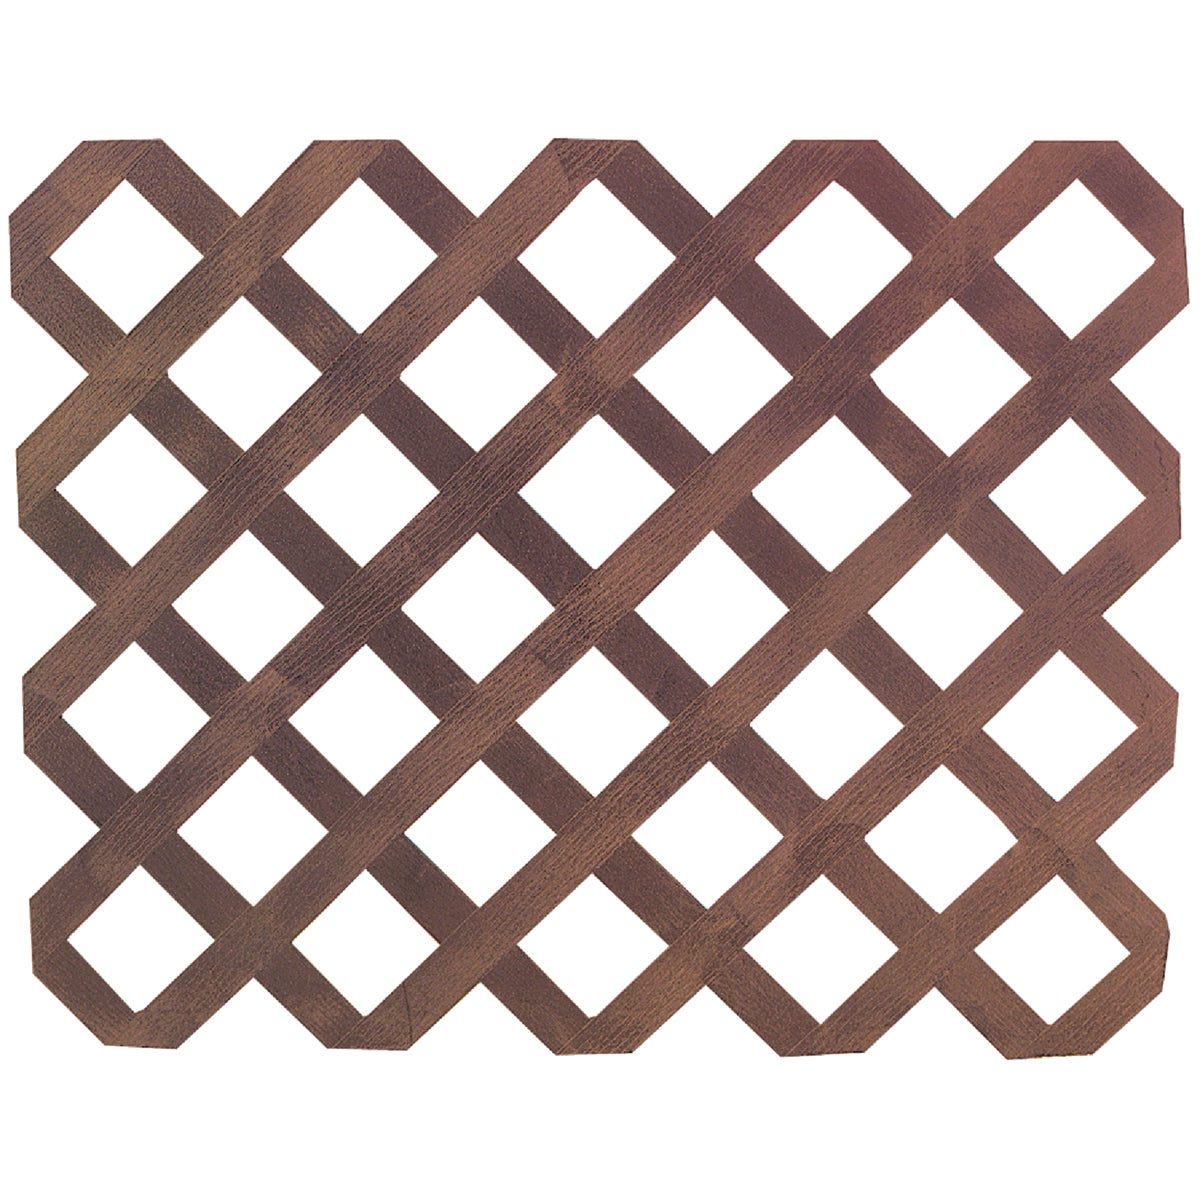 4X8 HD CEDAR LATTICE - L3060 by Real Wood Products